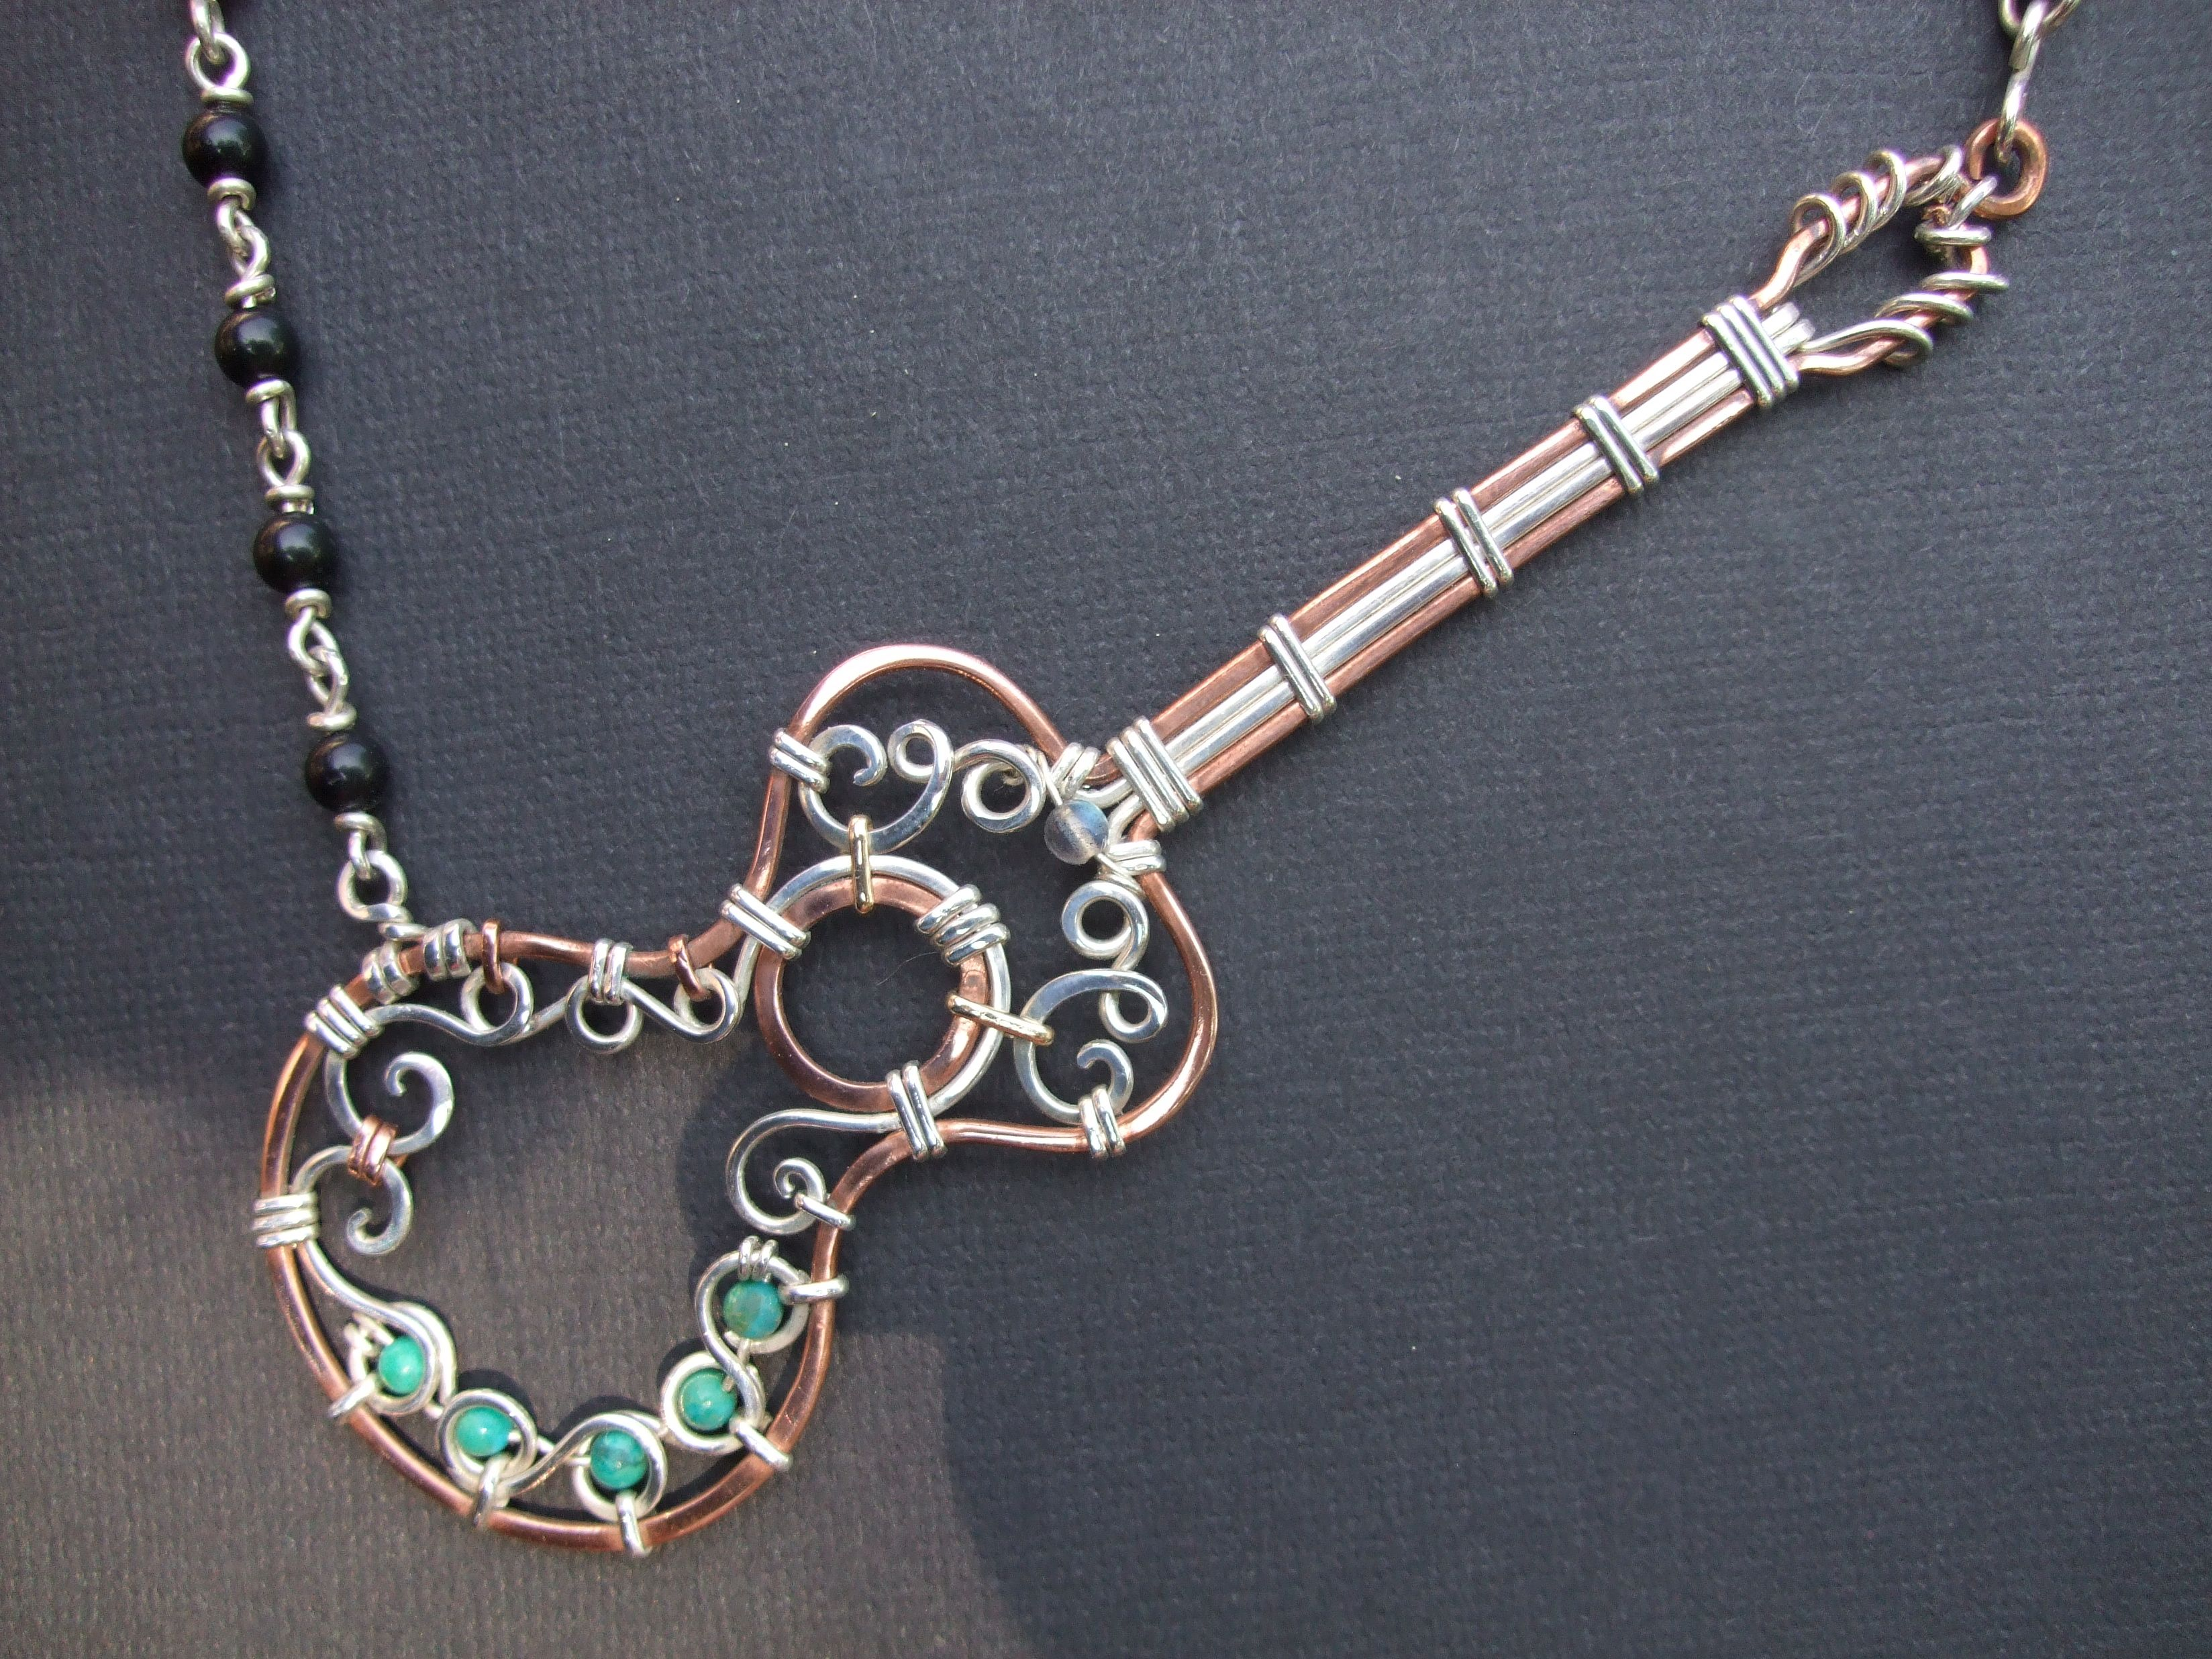 Copper, sterling silver, turquoise, and obsidian guitar necklace I made.  Picture only, no link.